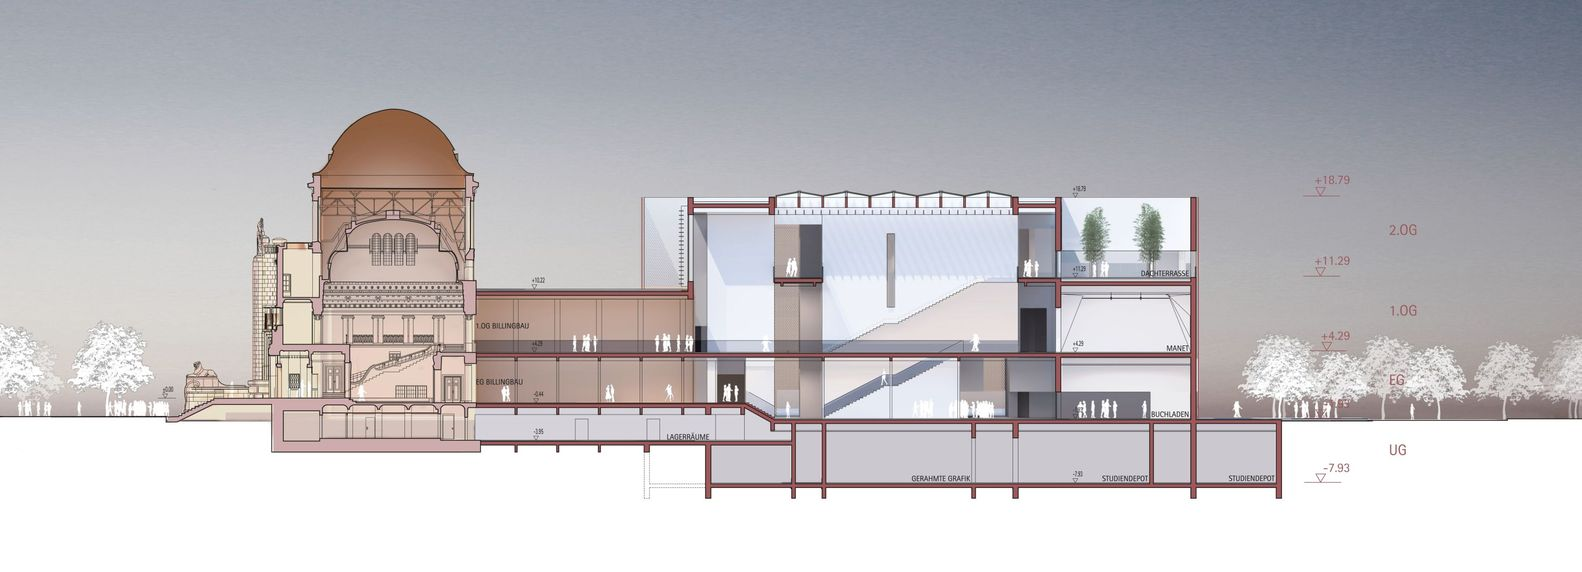 Gallery Of Kunsthalle Mannheim Winning Proposal Gmp Architekten 6